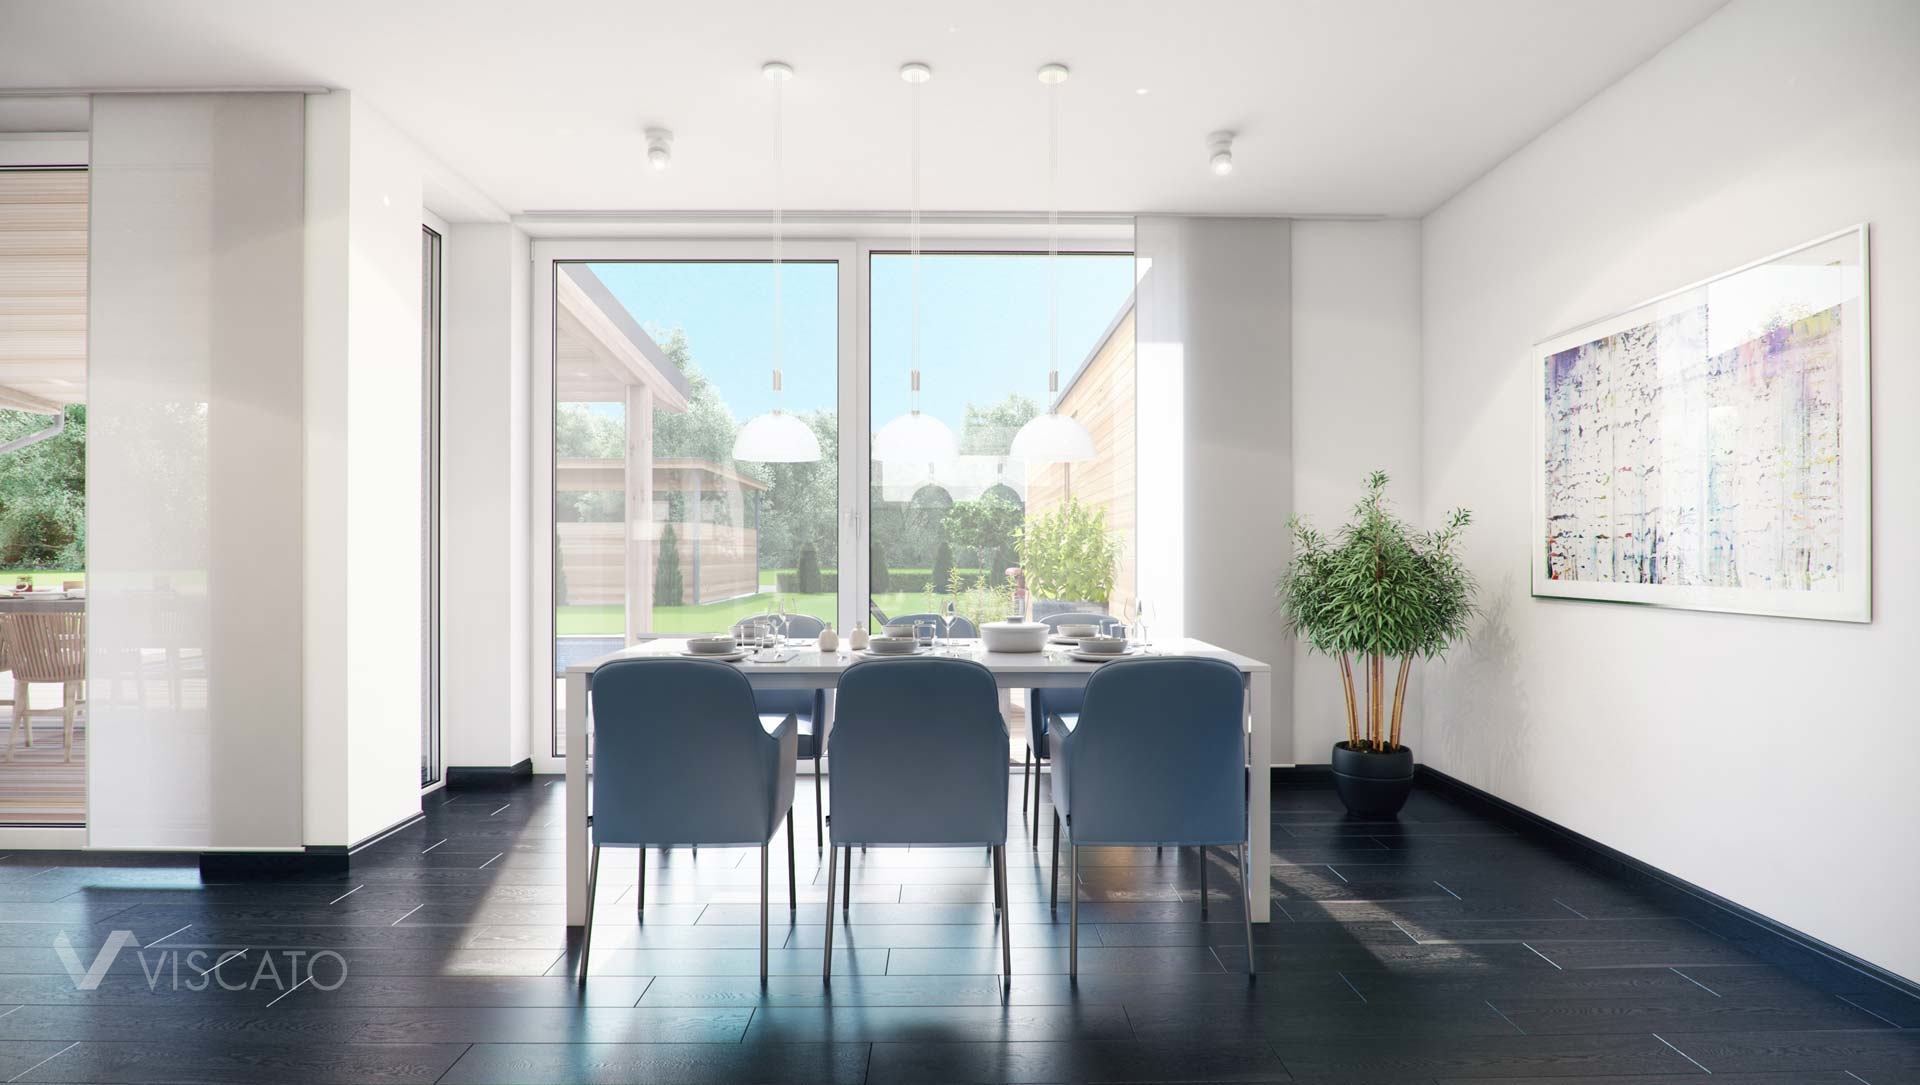 3d visualisation of a dining room with a garden view